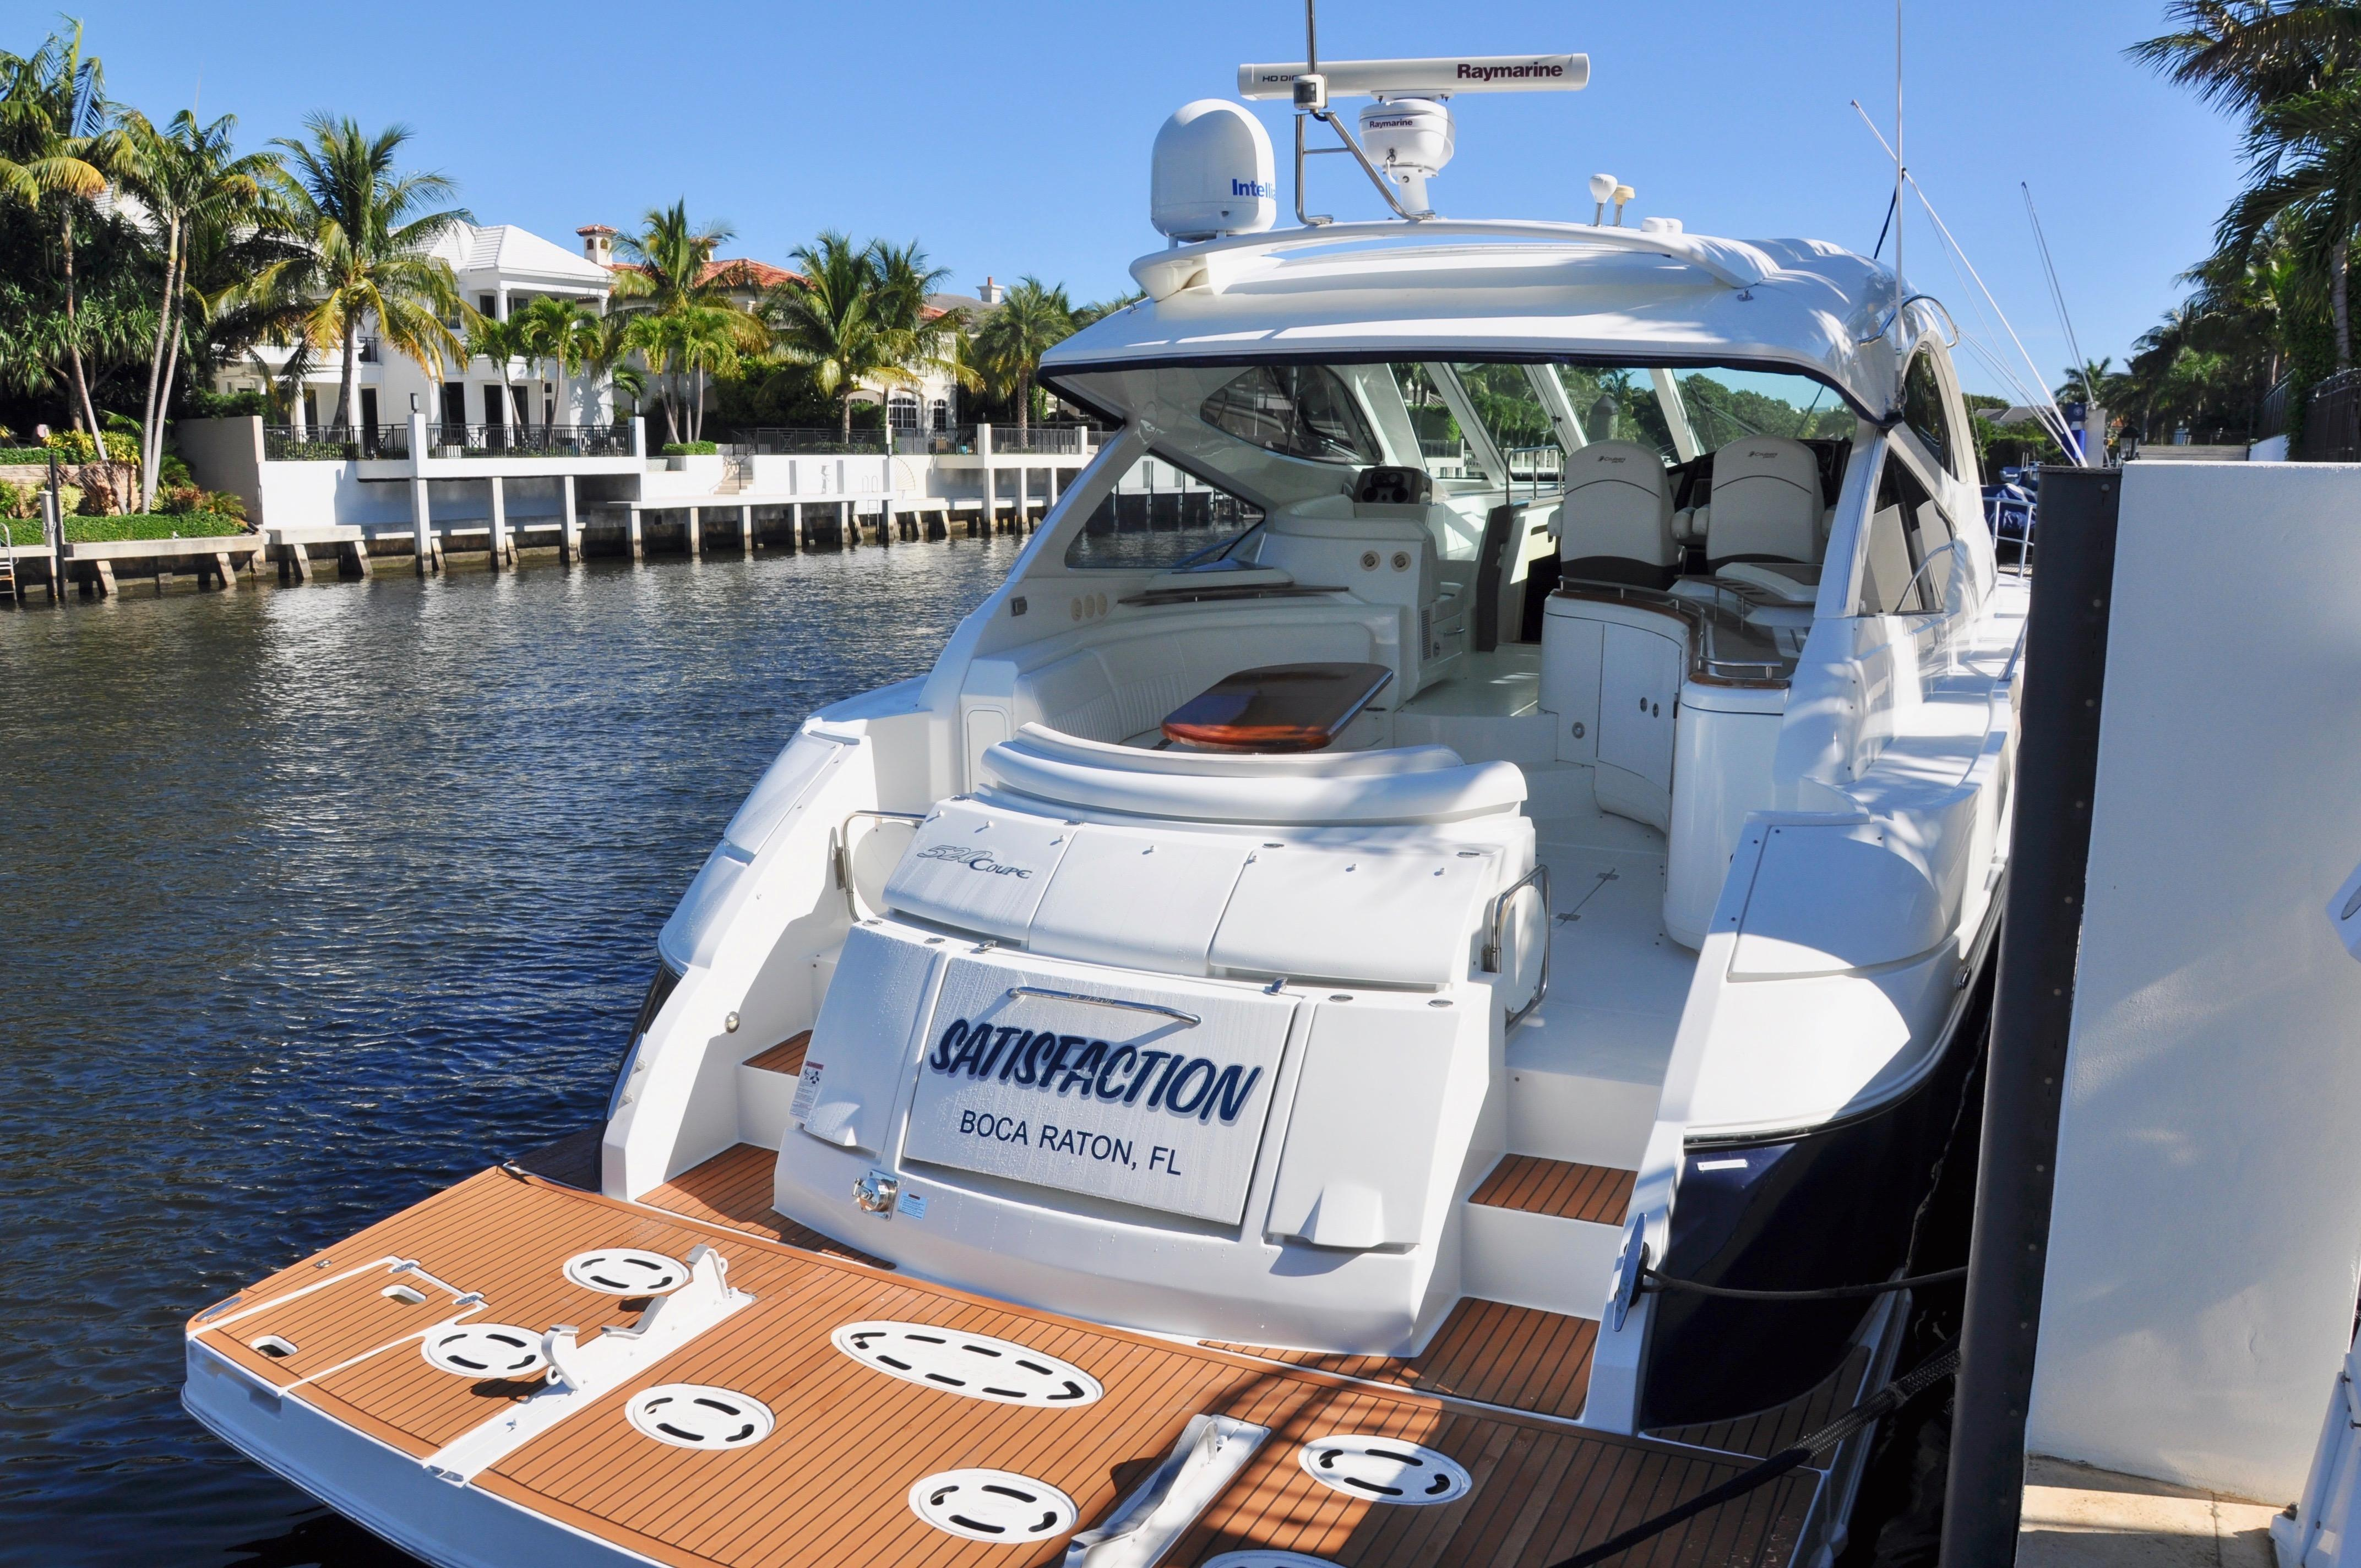 52 Cruisers Yachts 2009 Satisfaction Boca Raton Florida Sold On Wiring Diagram Transom View